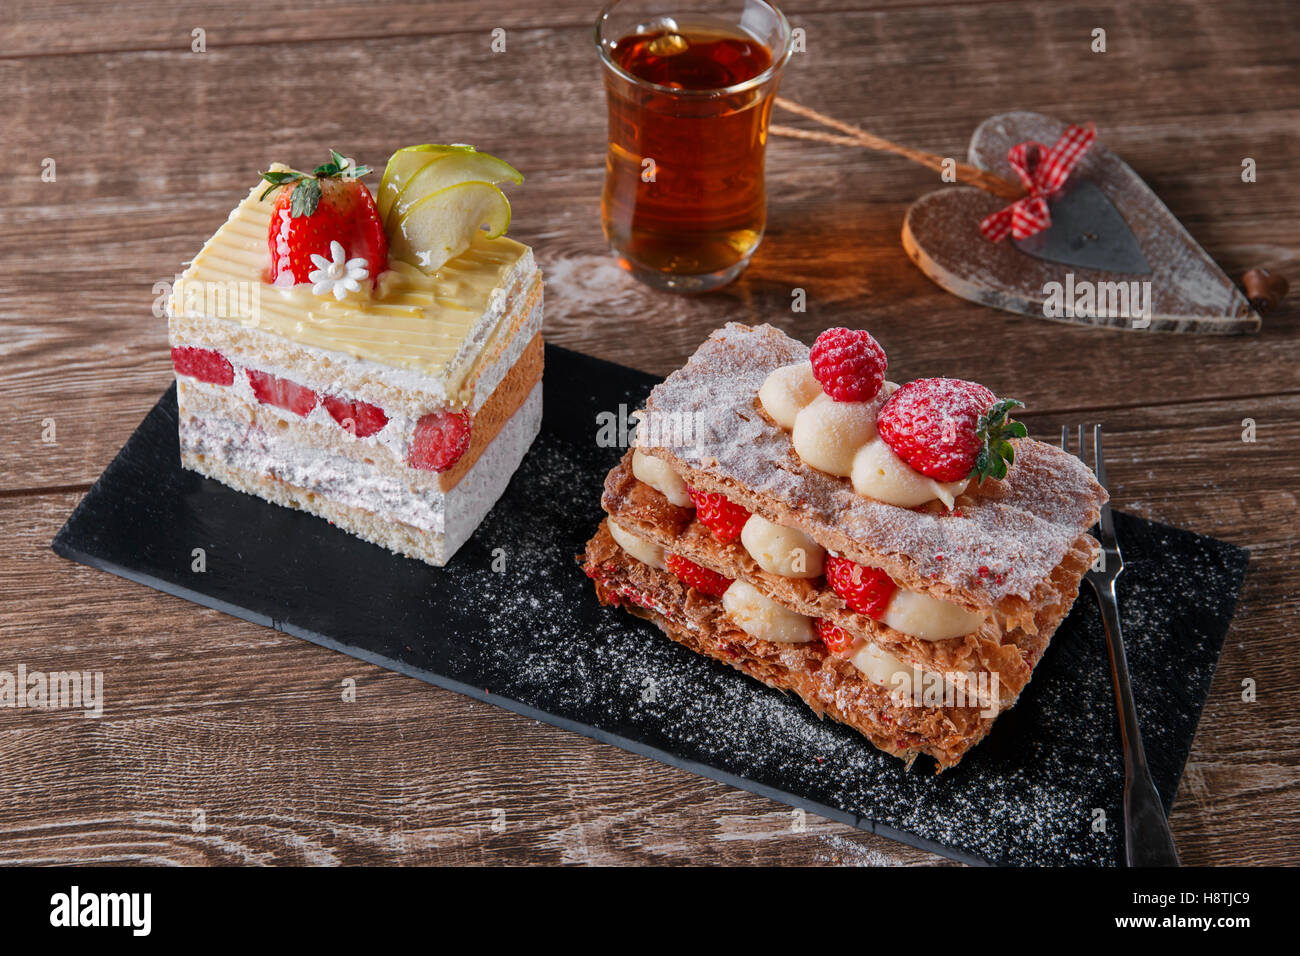 cream cake strawberry frosting mille feuille dessert sweet on black stone Stock Photo